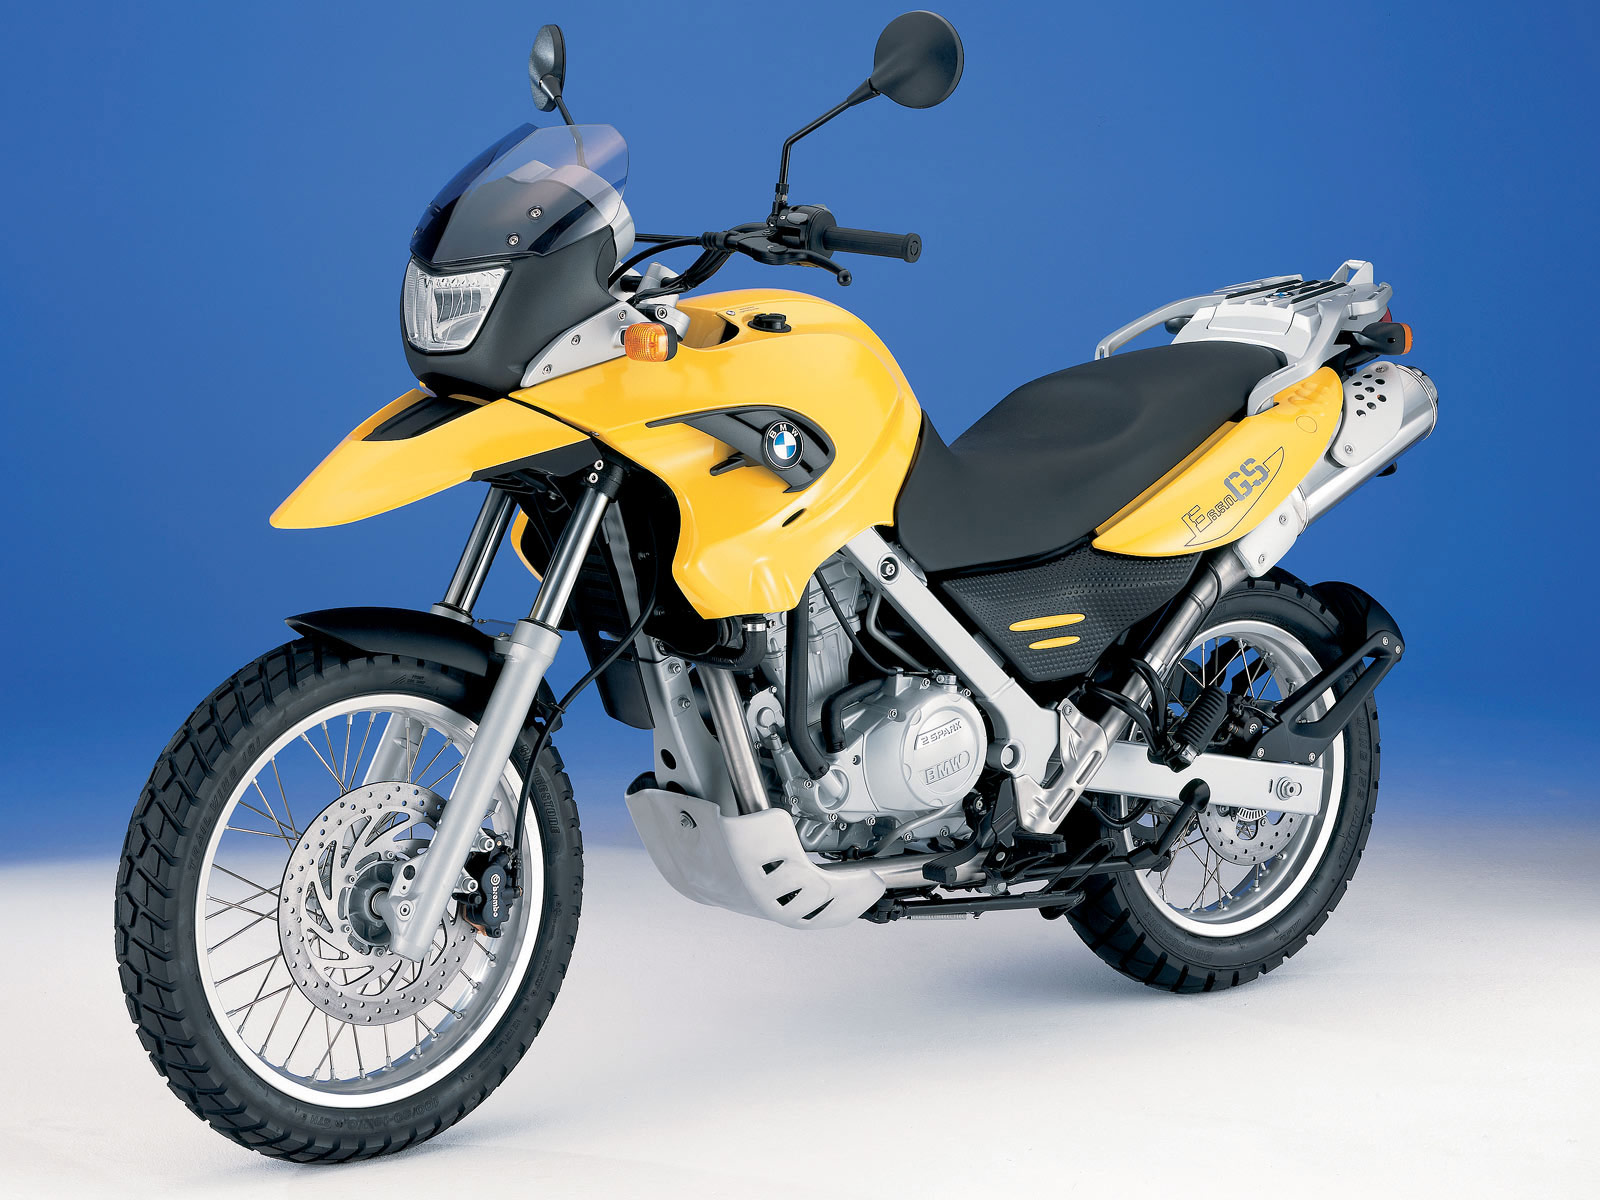 2004 bmw f 650 gs motorcycle wallpaper accident lawyers info. Black Bedroom Furniture Sets. Home Design Ideas